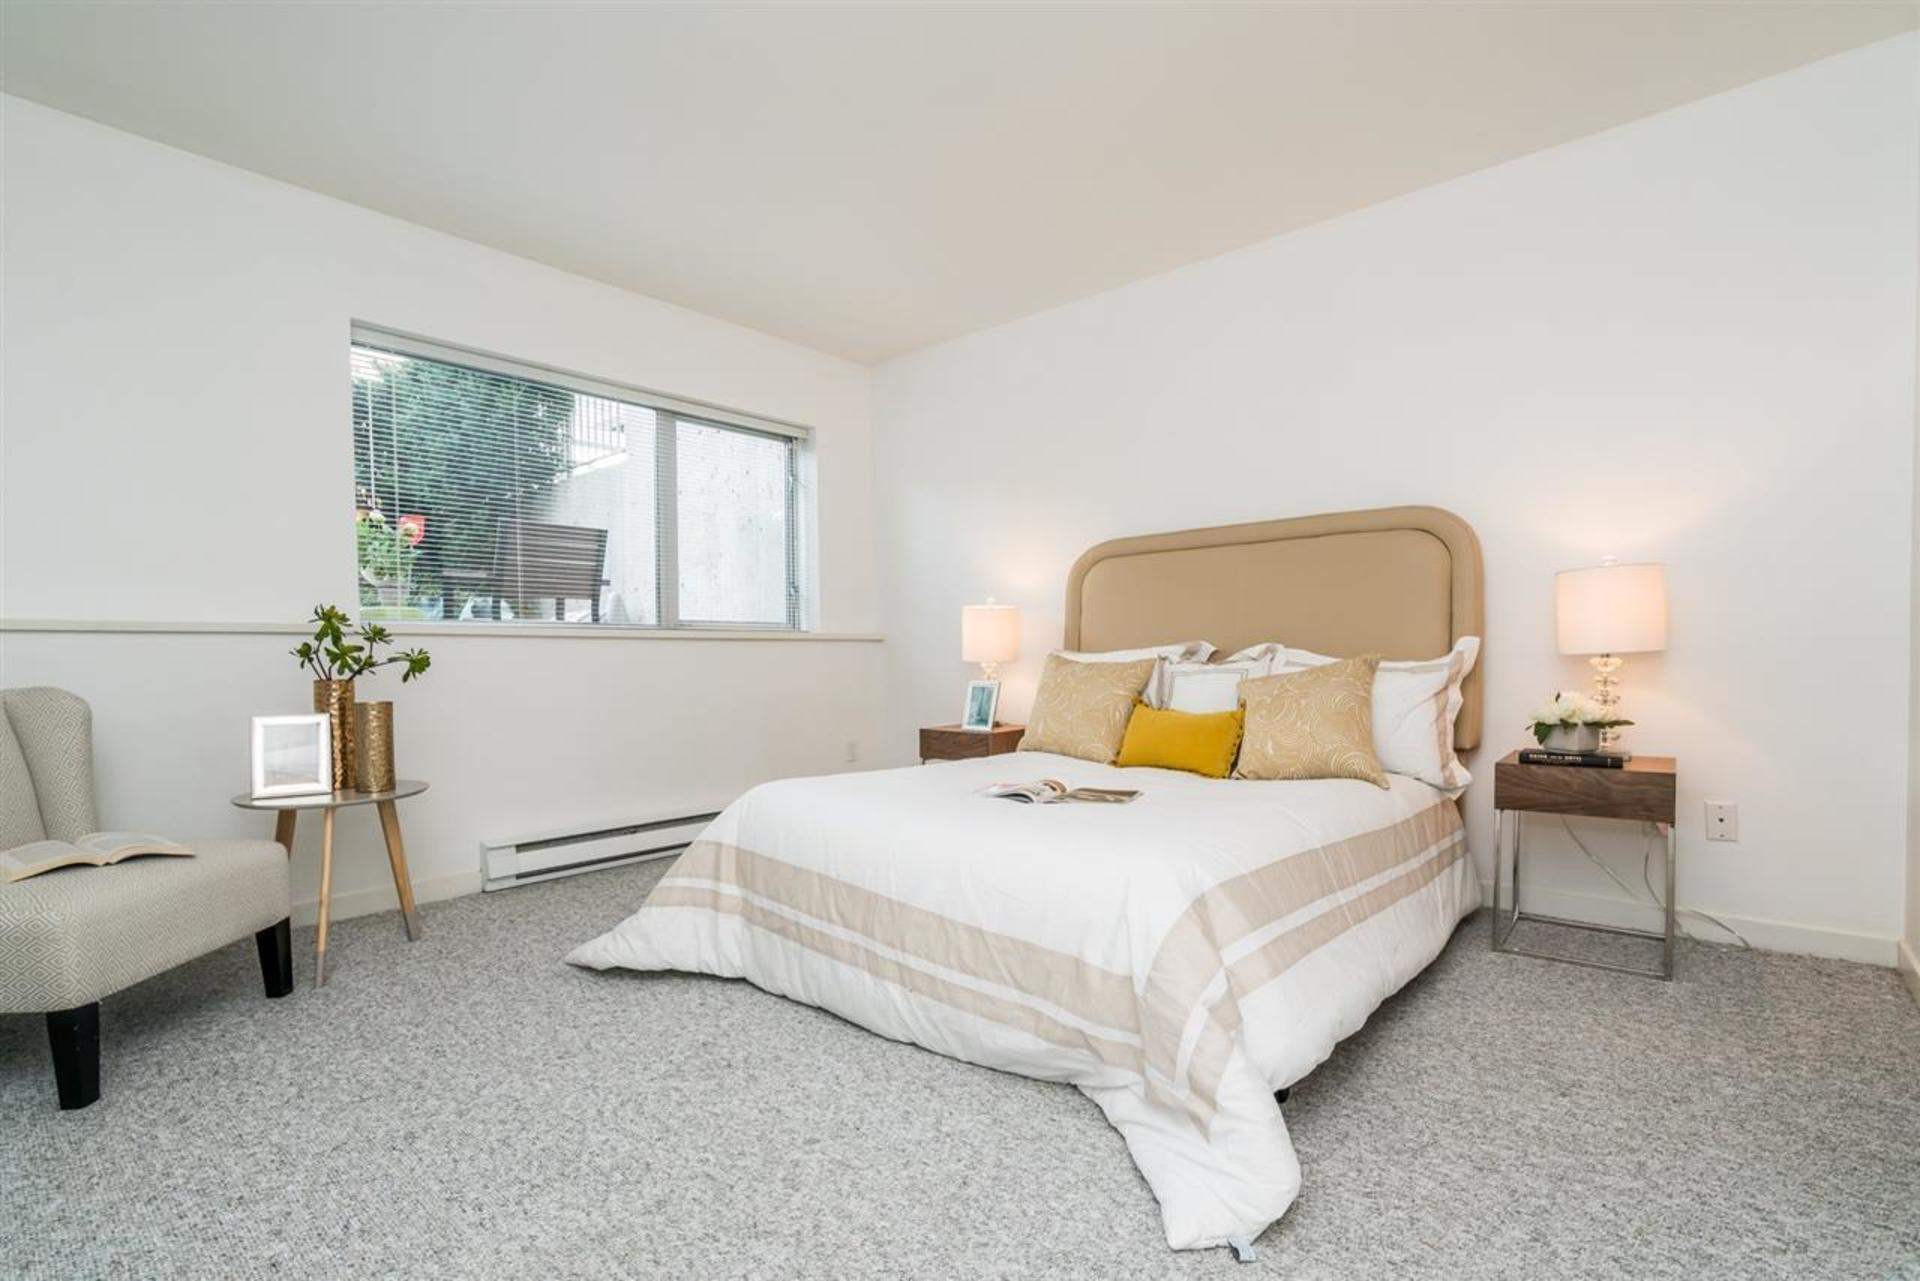 1288-chesterfield-avenue-central-lonsdale-north-vancouver-12-1 at TH3 - 1288 Chesterfield Avenue, Central Lonsdale, North Vancouver